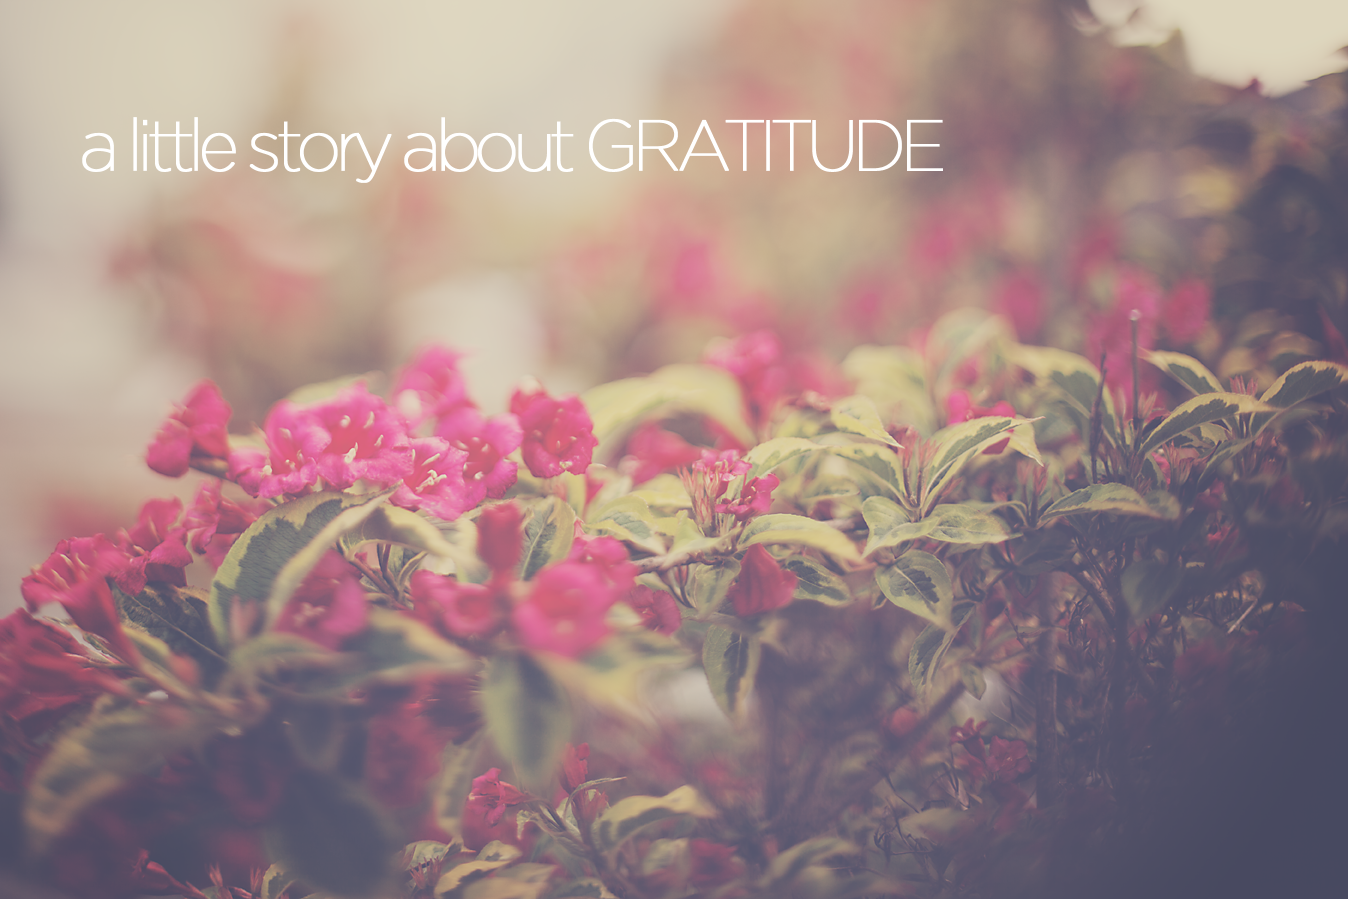 A story about Gratitude